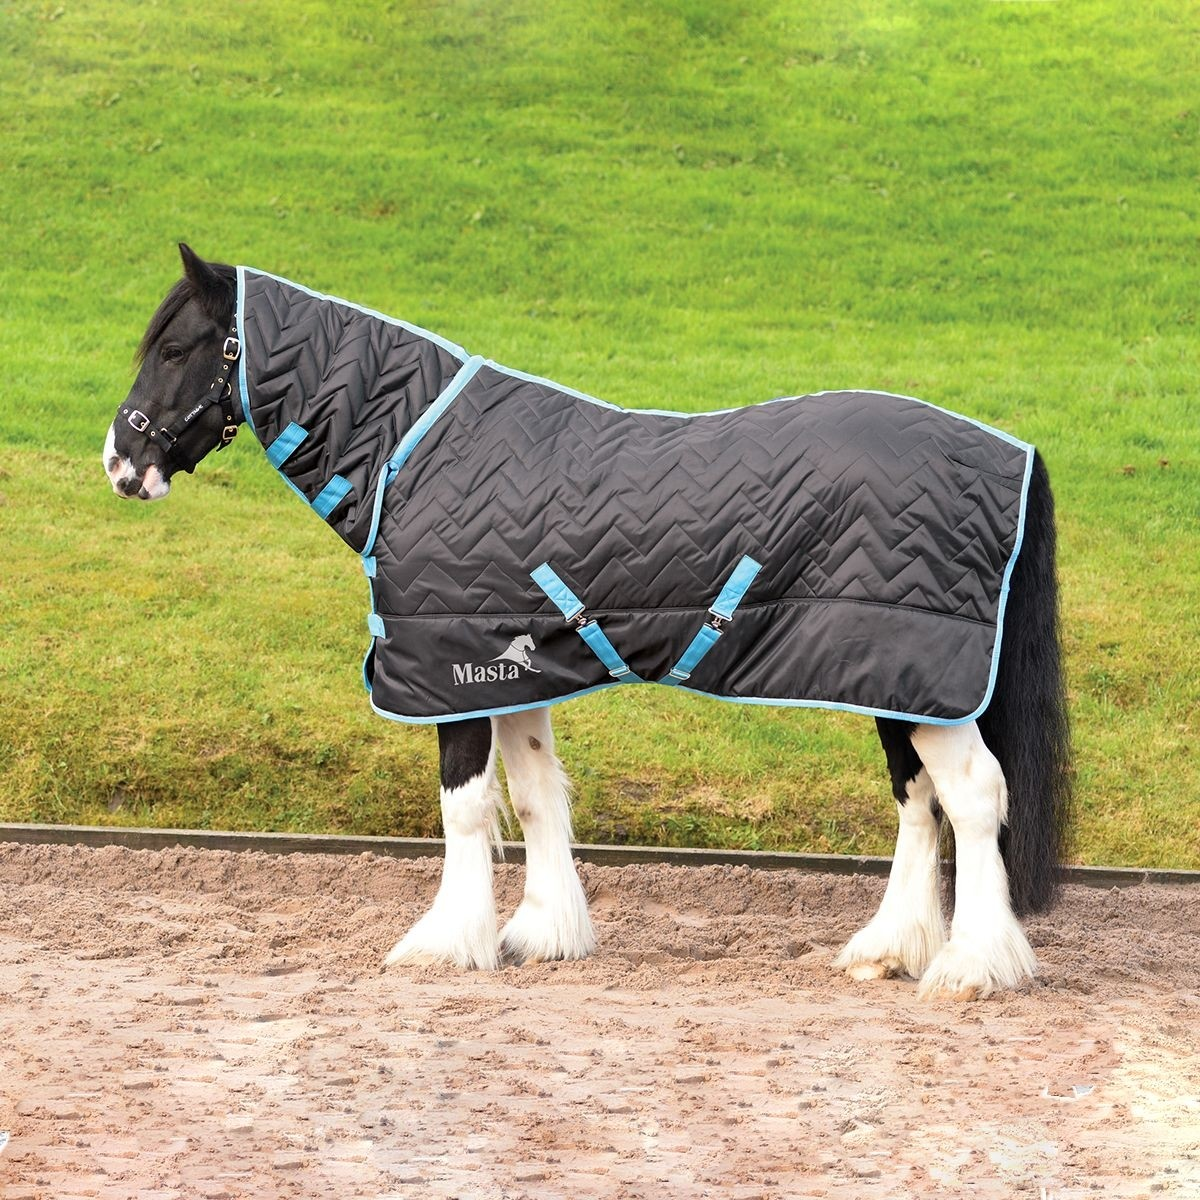 Masta Avante 300g Fixed Neck Stable Rug  - Thomas Irving's equestrian and accessories store  Masta Avante 300g Fixed Neck Stable Rug